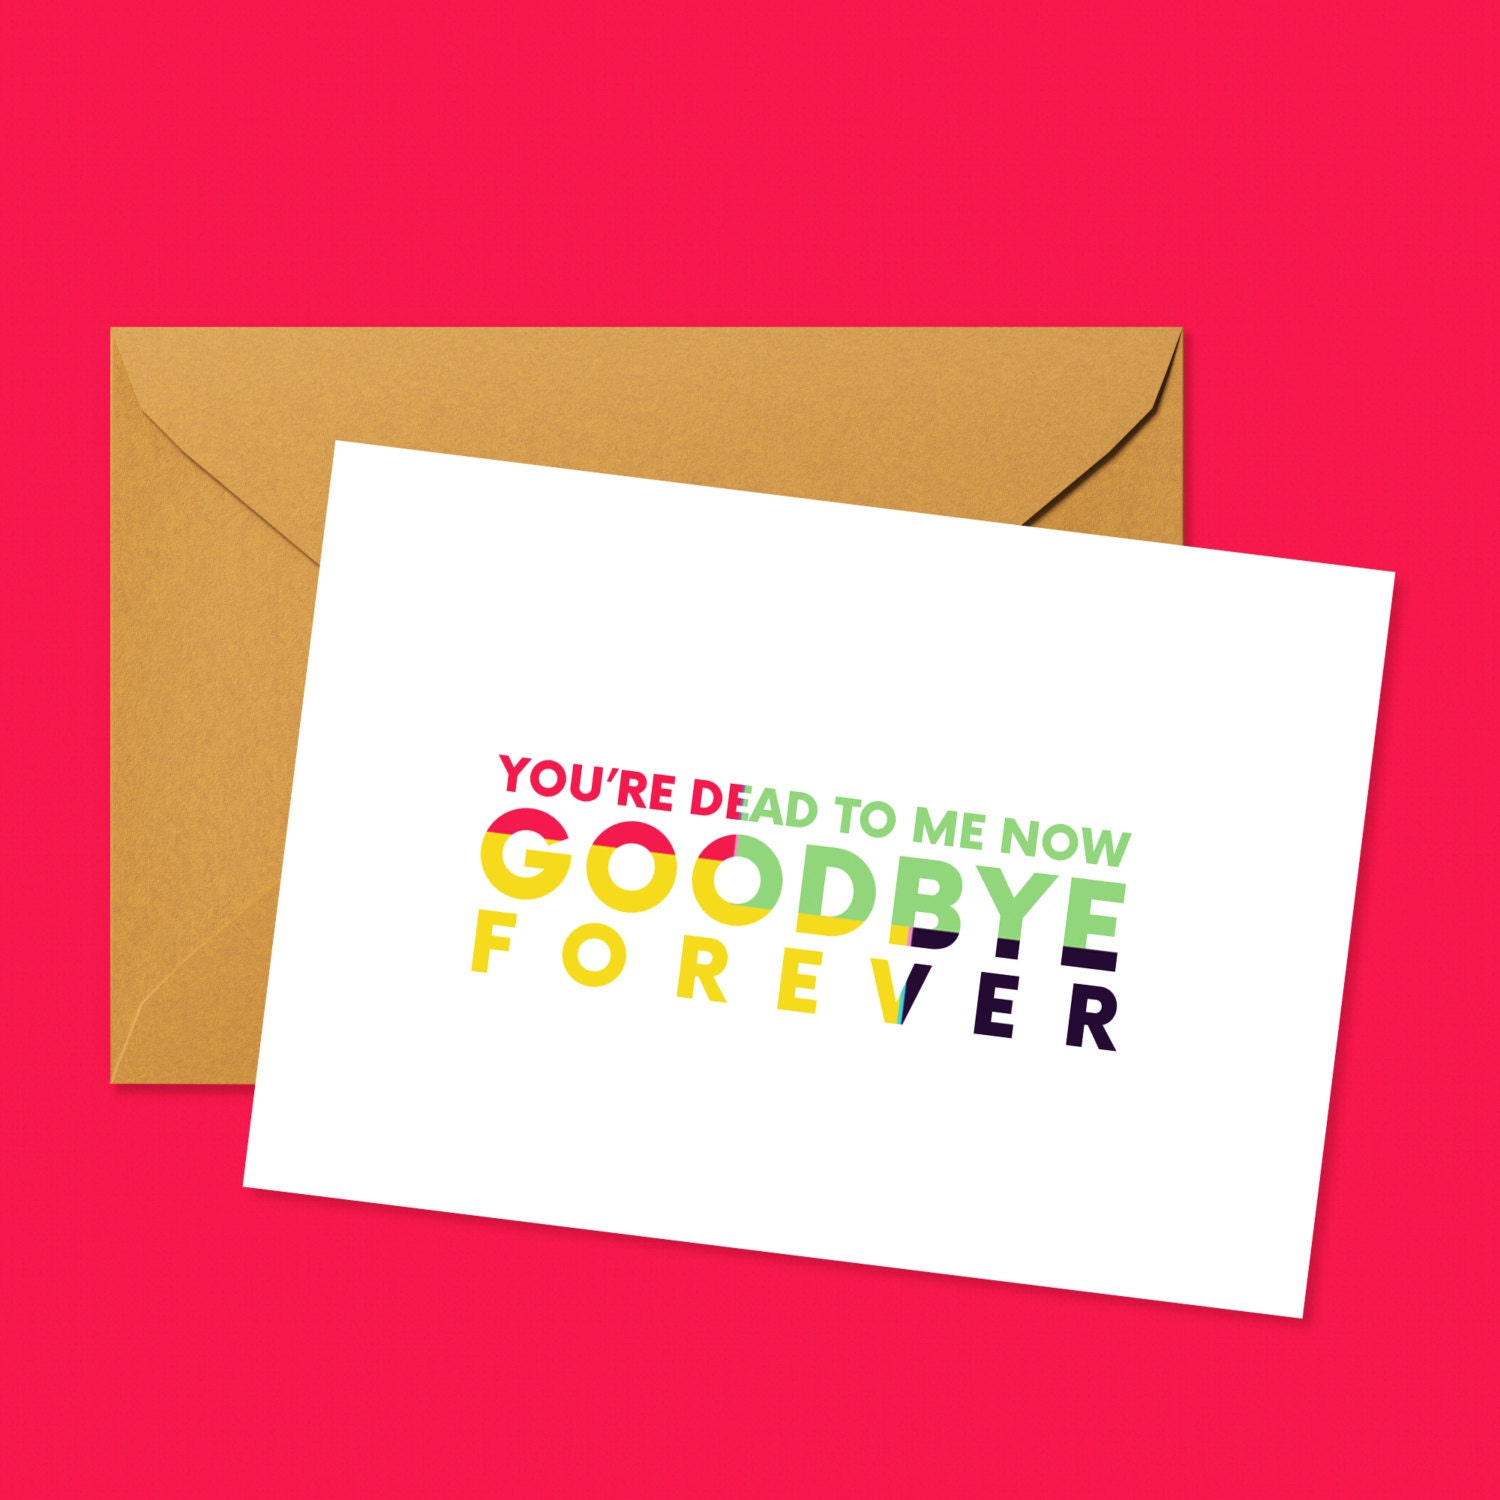 goodbye forever farewellgoodbye greeting card for departing